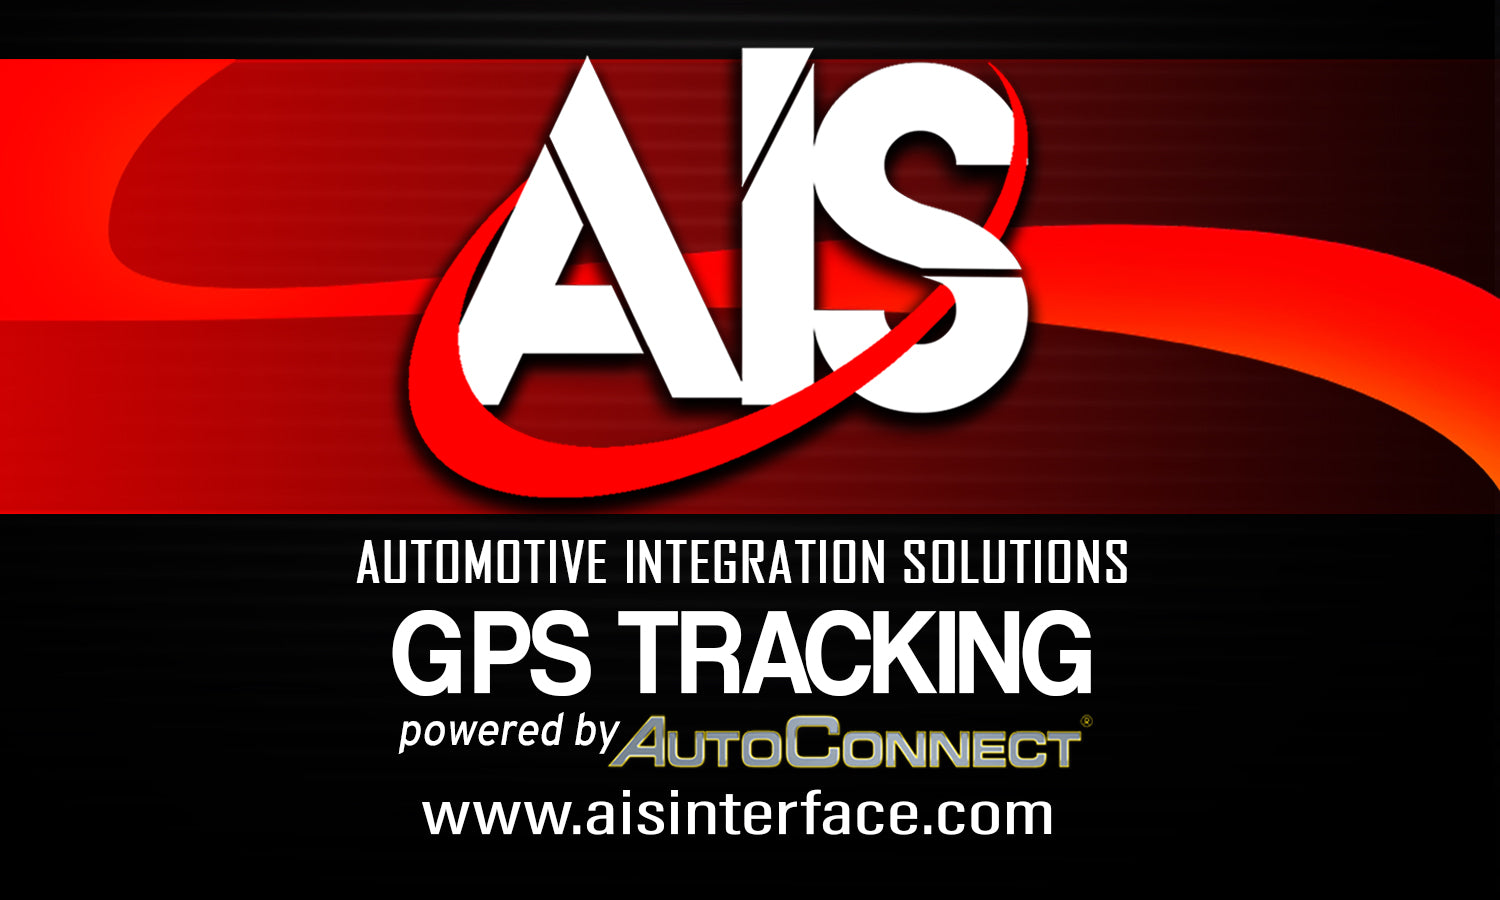 Gps Tracking Automotive Integration Solutions Ais Wiring Diagram Powered By Autoconnects Mapping Dashboard Interface Is Part Of A World Class End To Fleet Management Solution